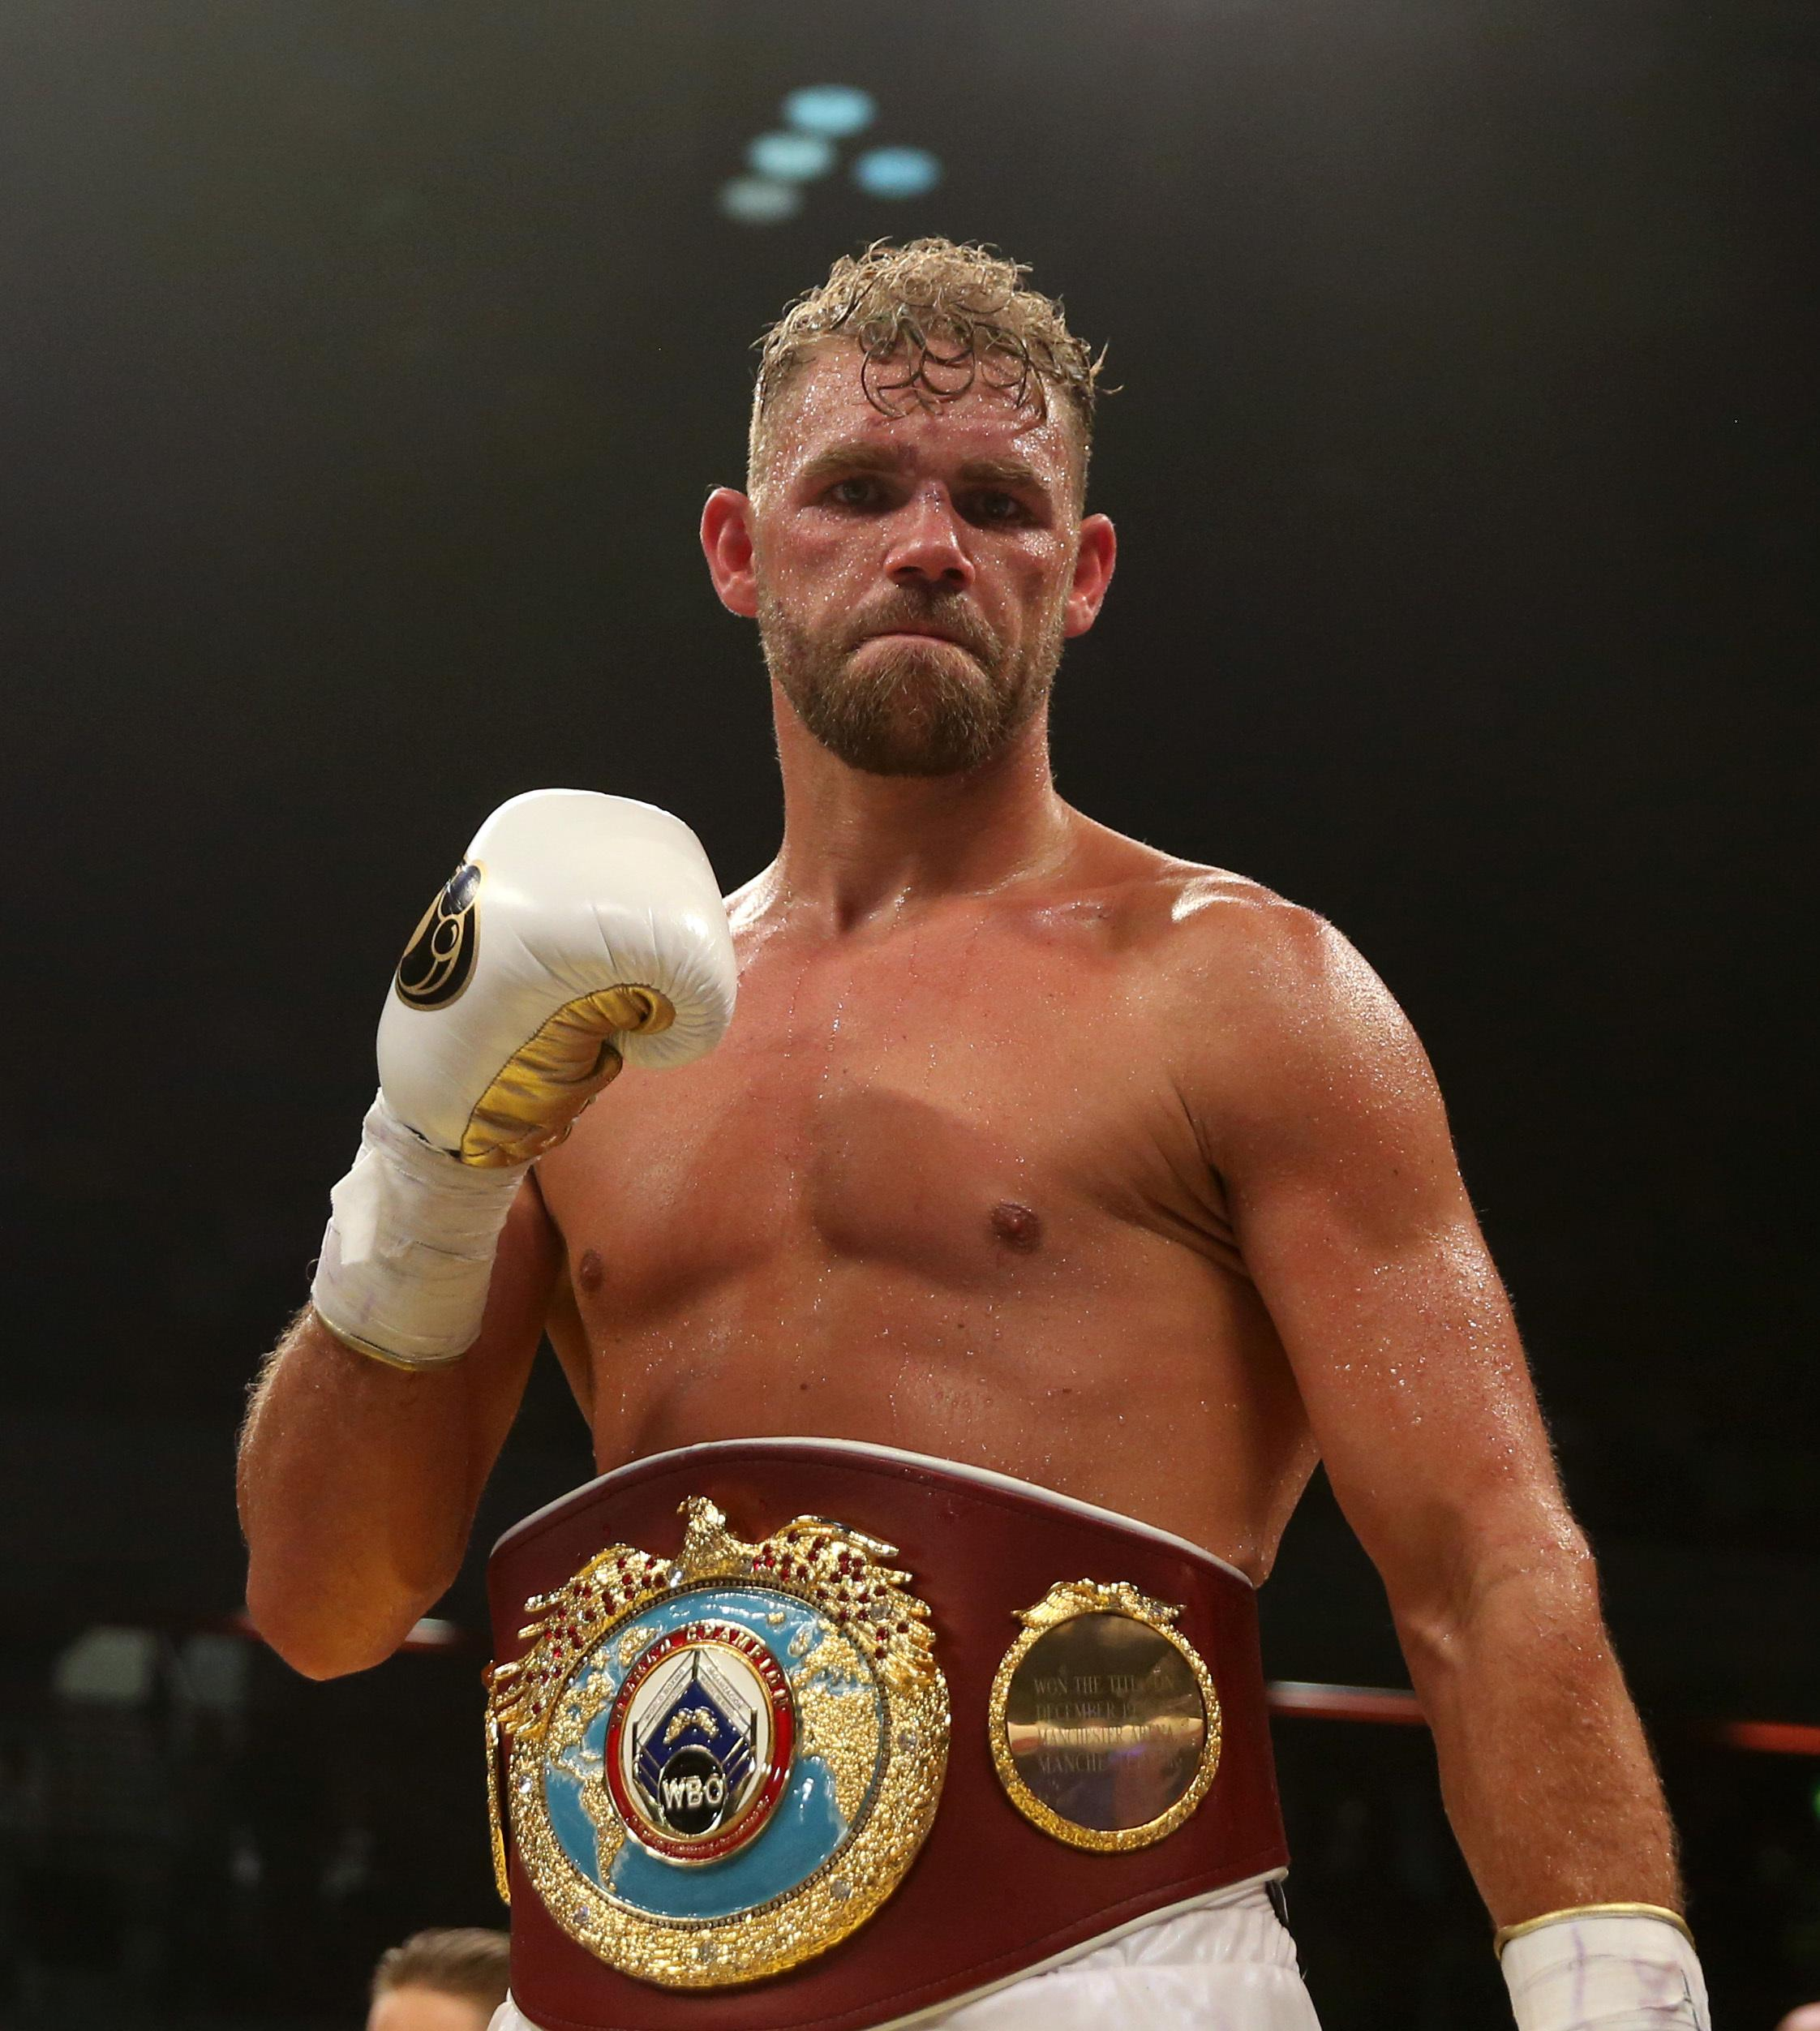 Billy Joe Saunders failed to land a unification clash with Gennady Golovkin